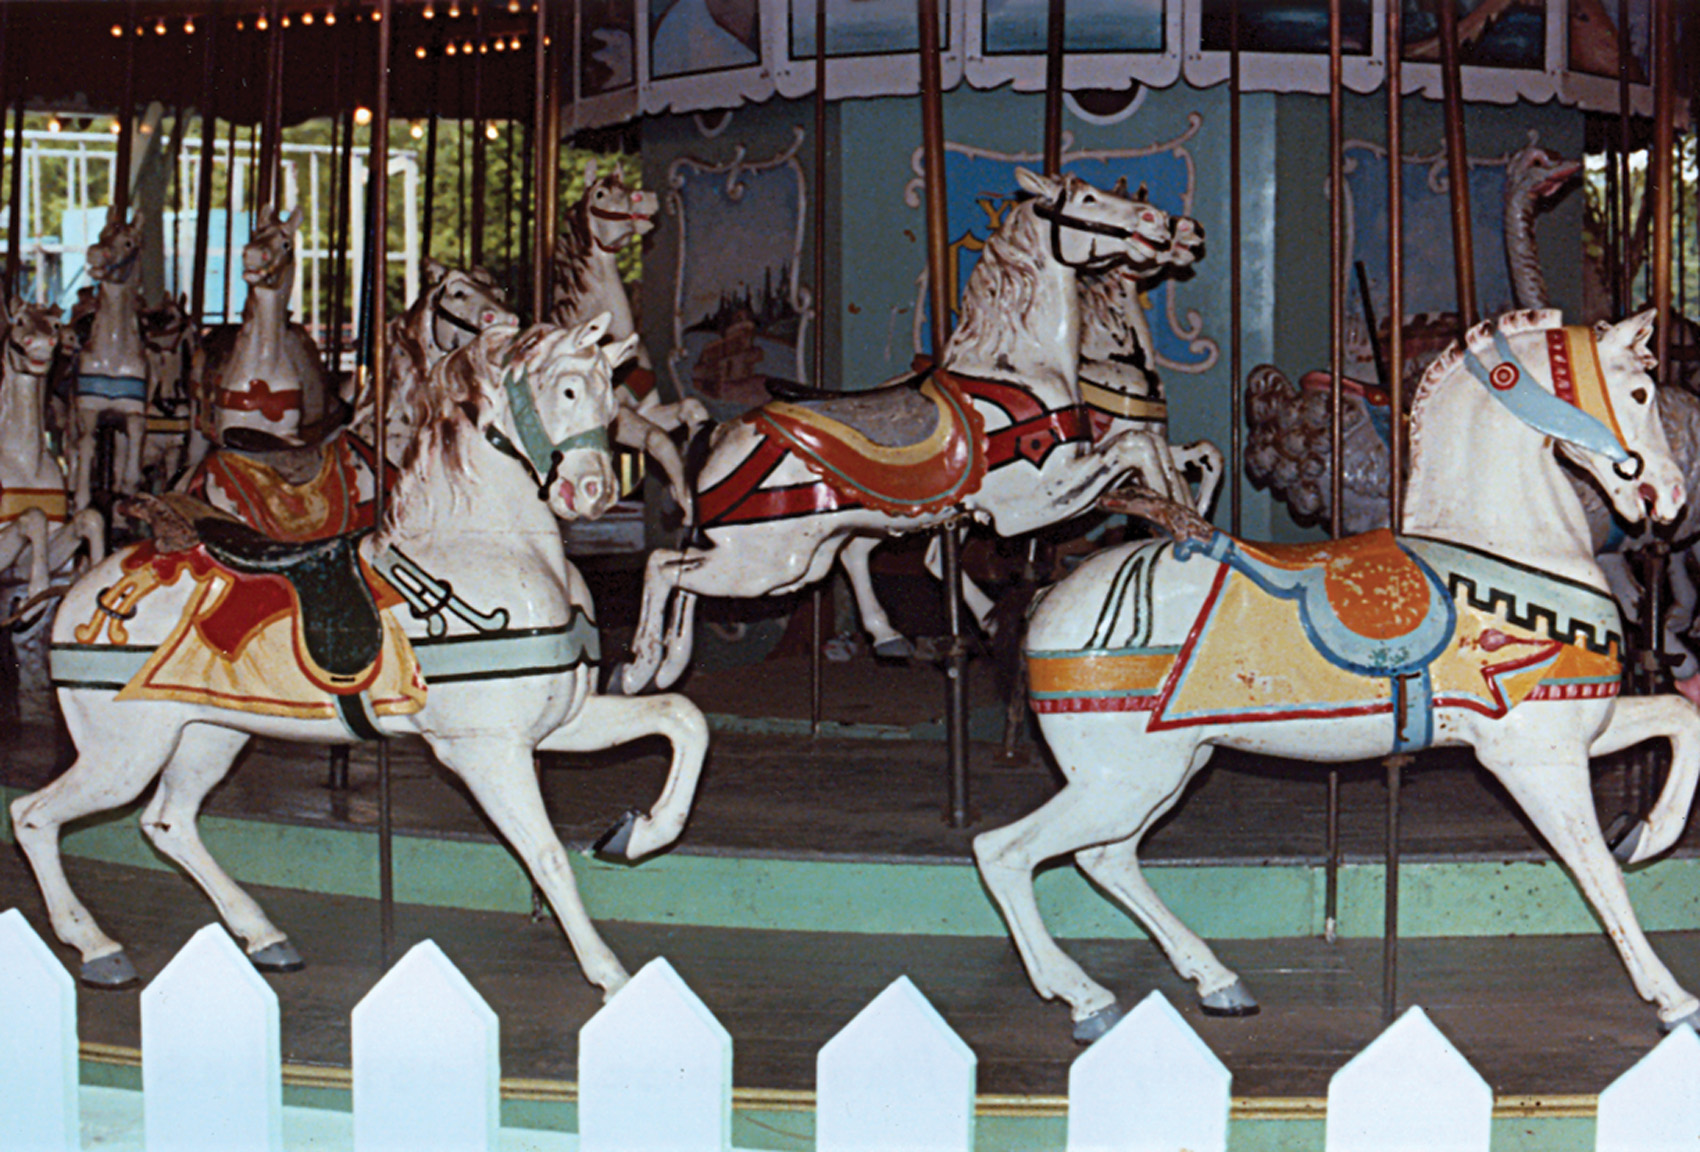 Beech-Bend-park-Dentzel-menagerie-carousel-2-Farnsworth-photo